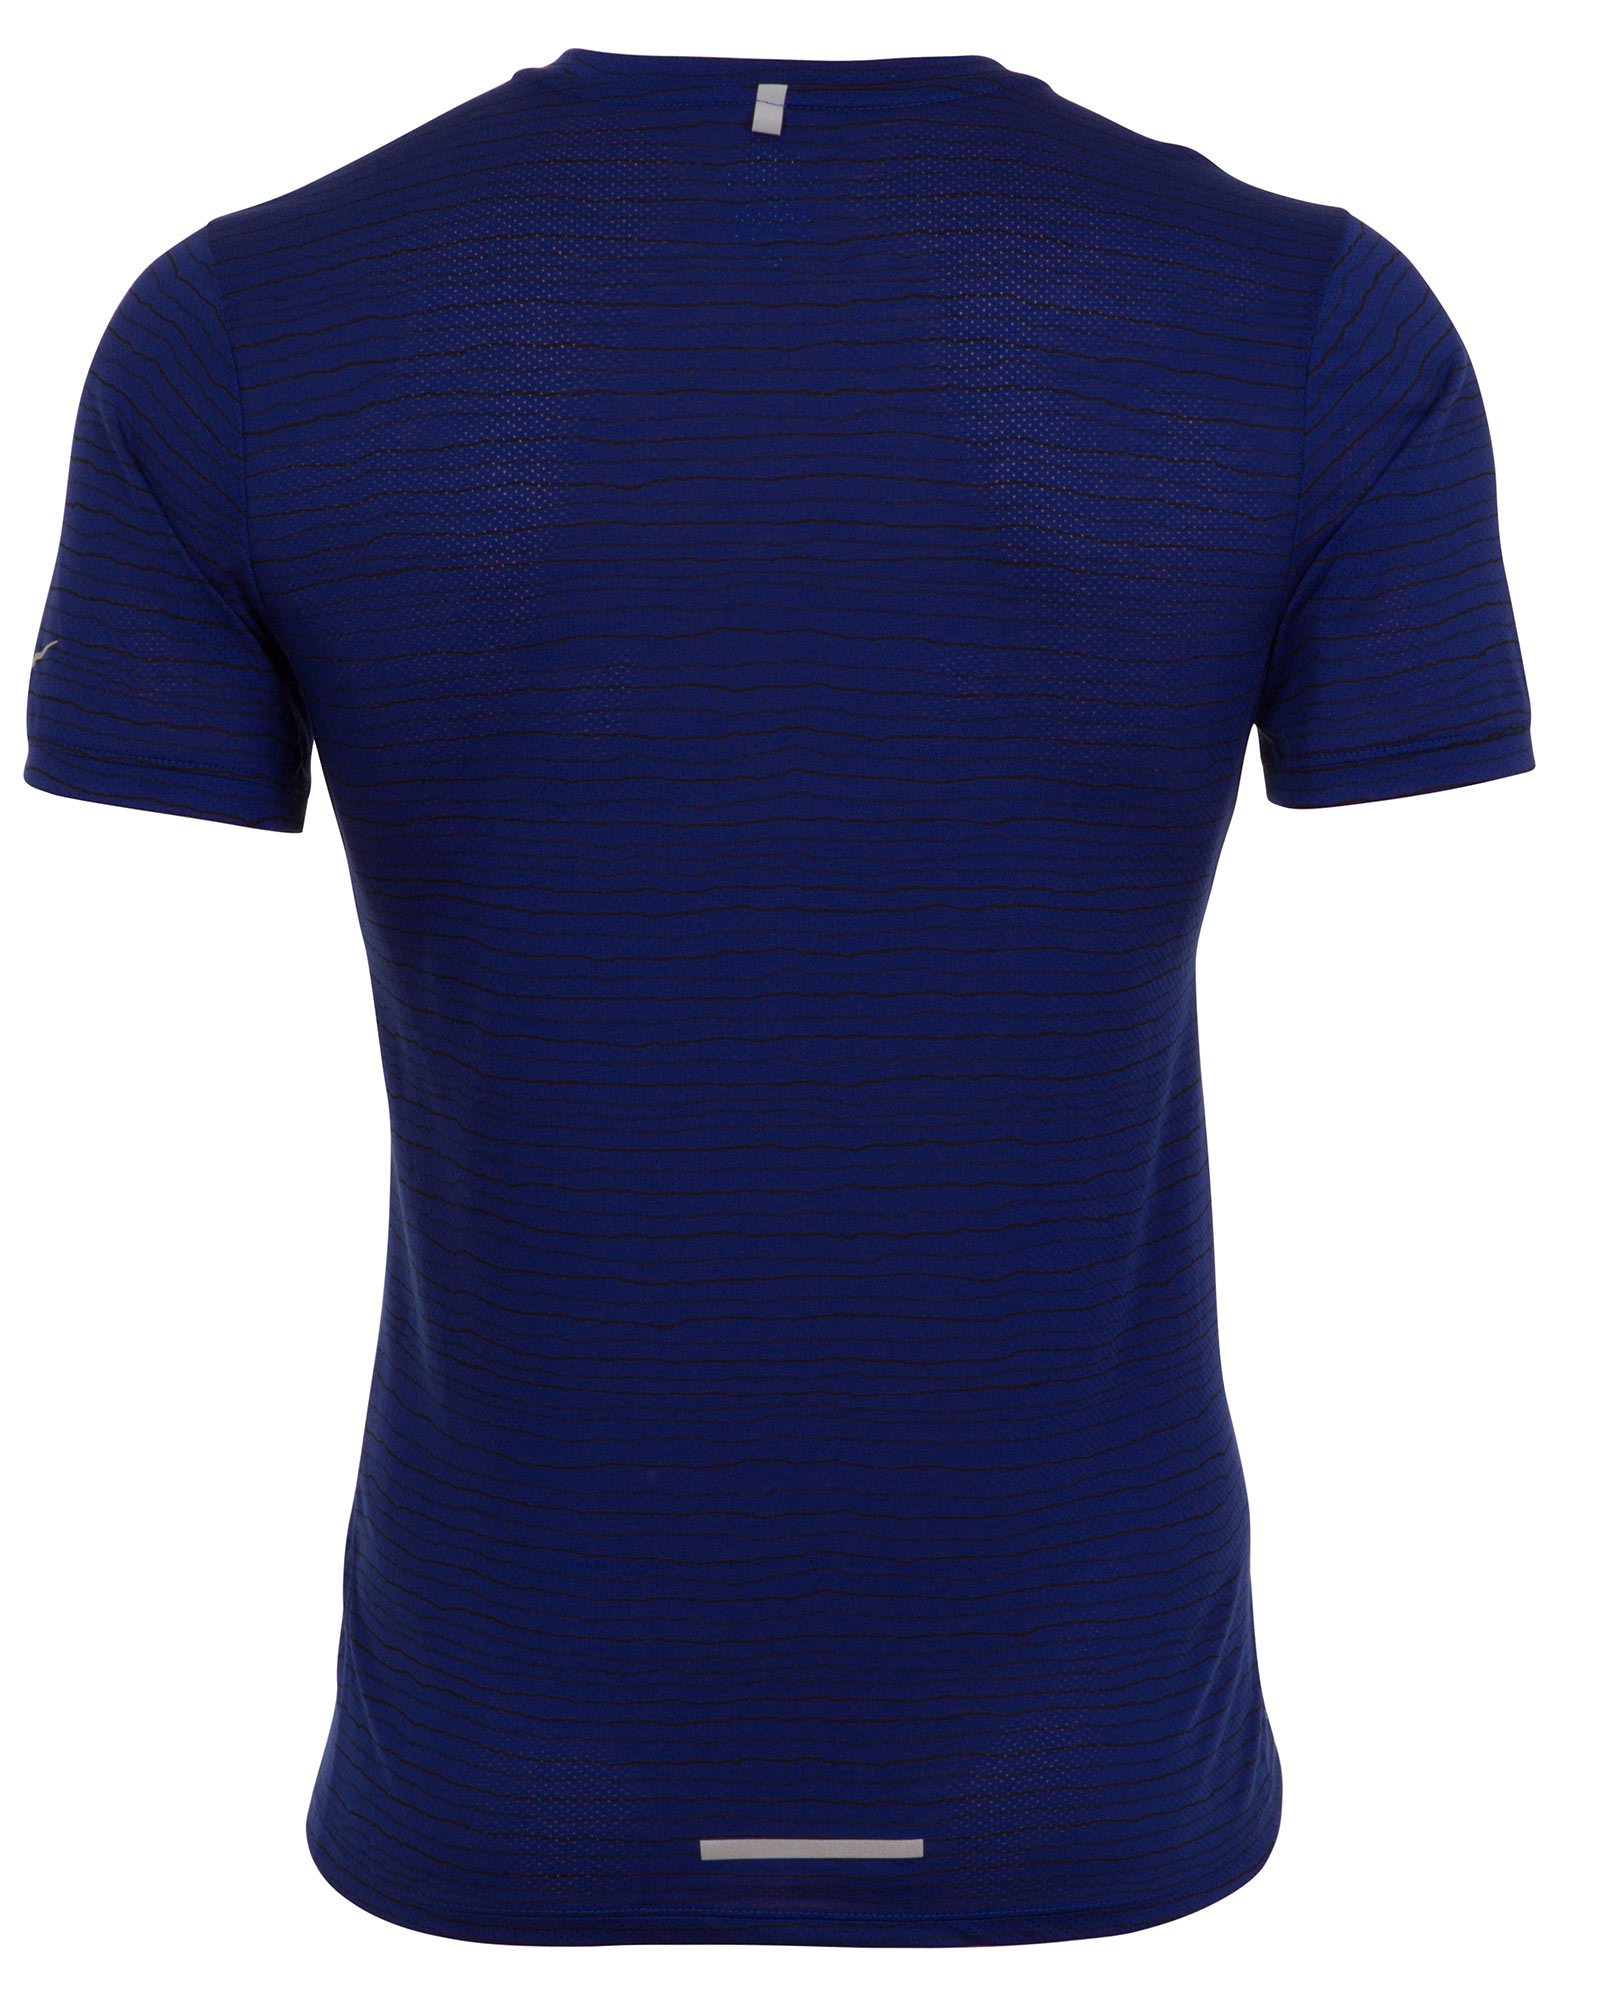 Nike dri fit cool tailwind stripe blue mens running t for Dri fit dress shirts